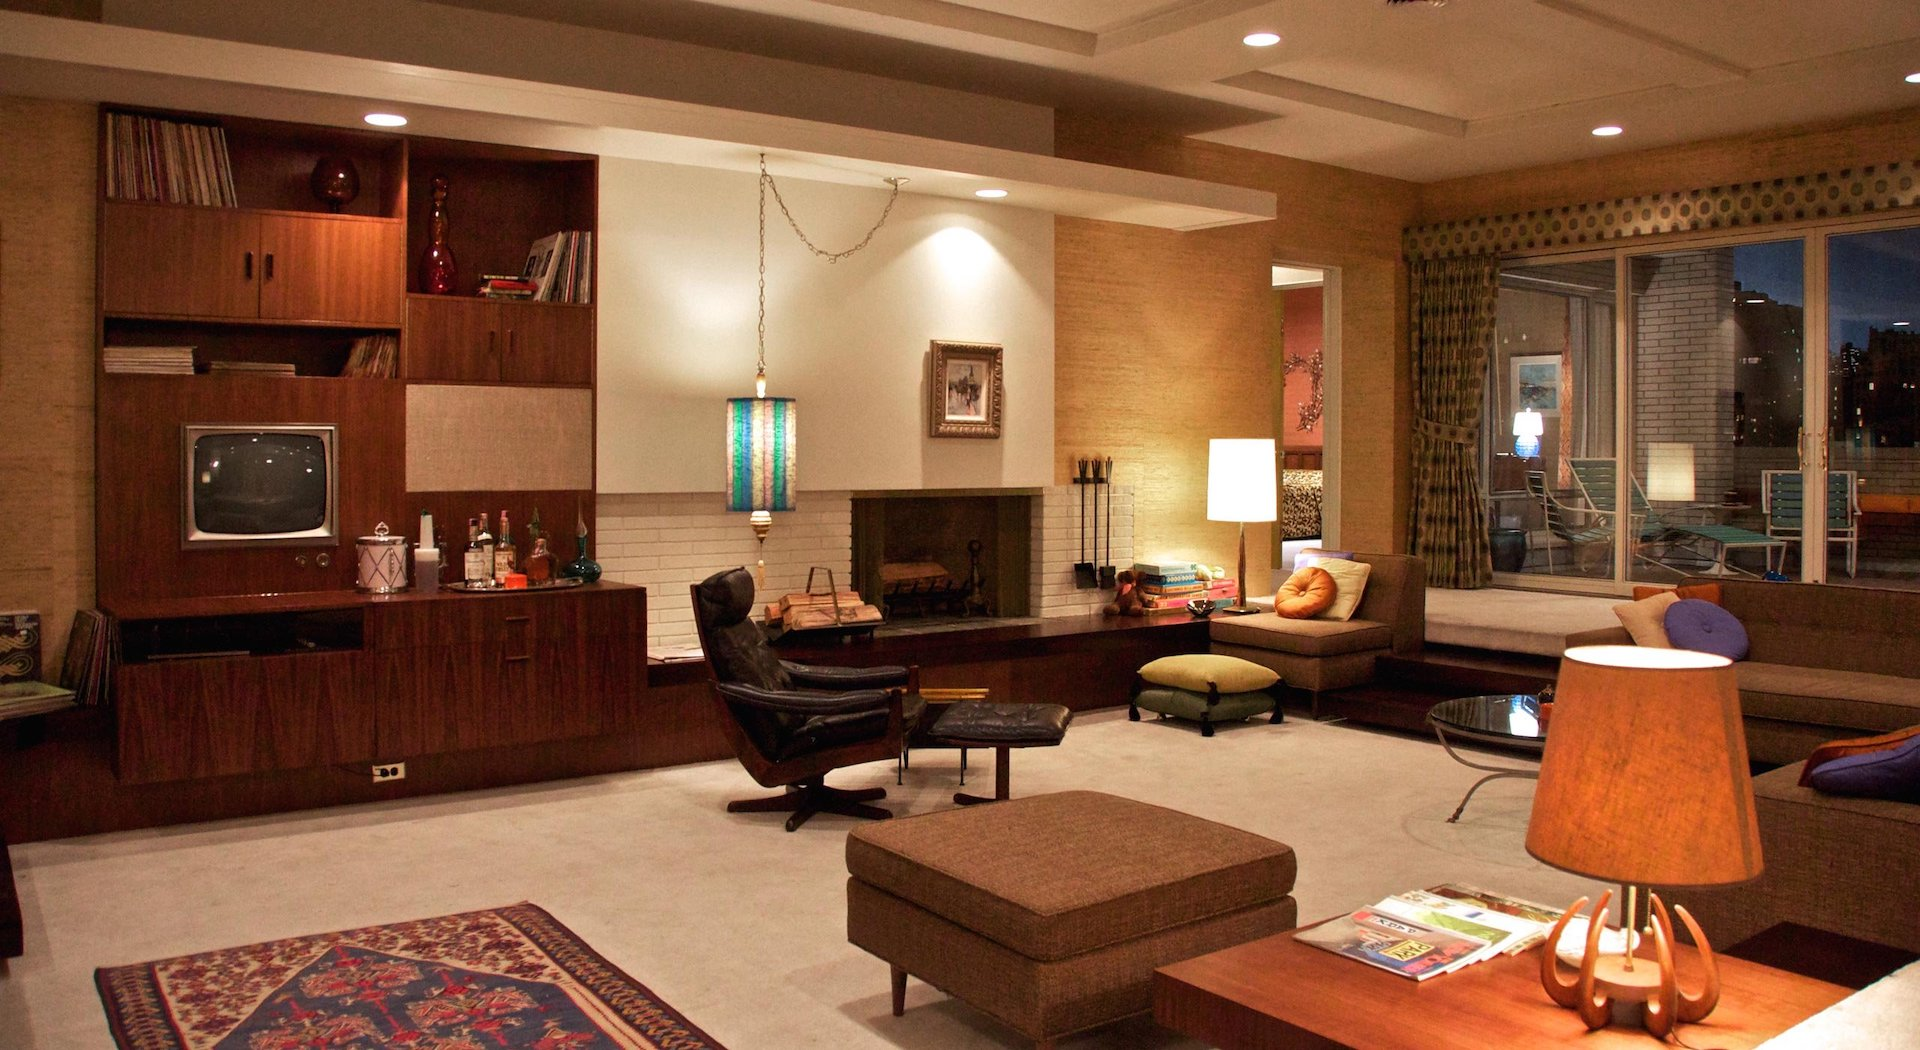 Penthouse set of Mad Men with Mid-Century Modern styling.